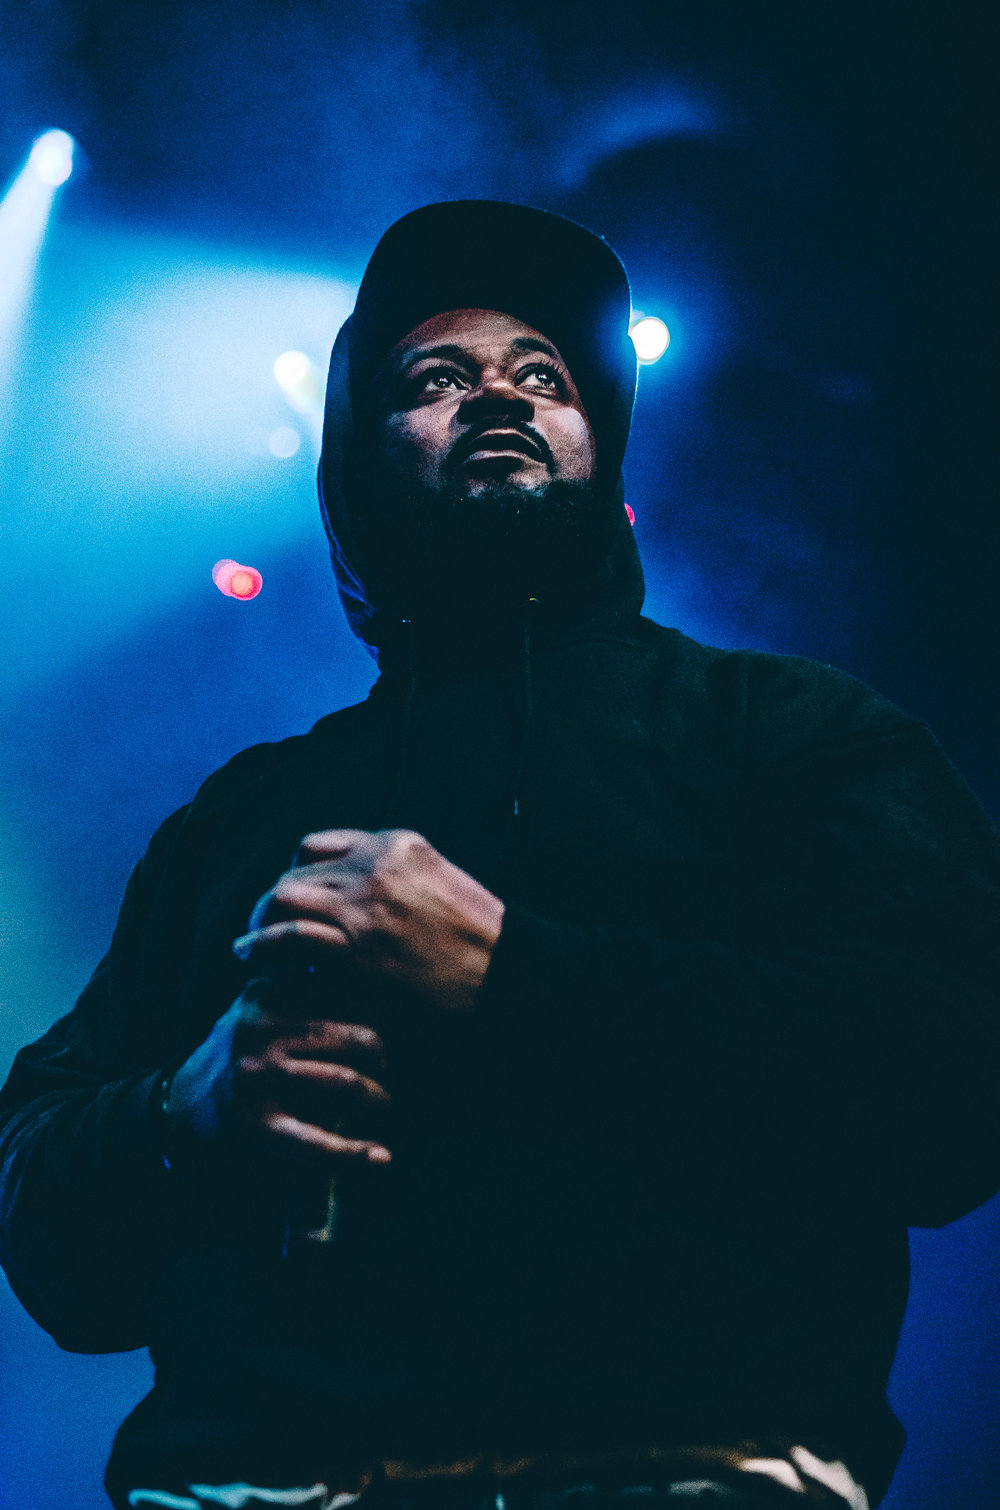 1_Ghostface_Killah-Rickshaw_Theatre-Timothy_Nguyen-20170227 (6 of 16).jpg